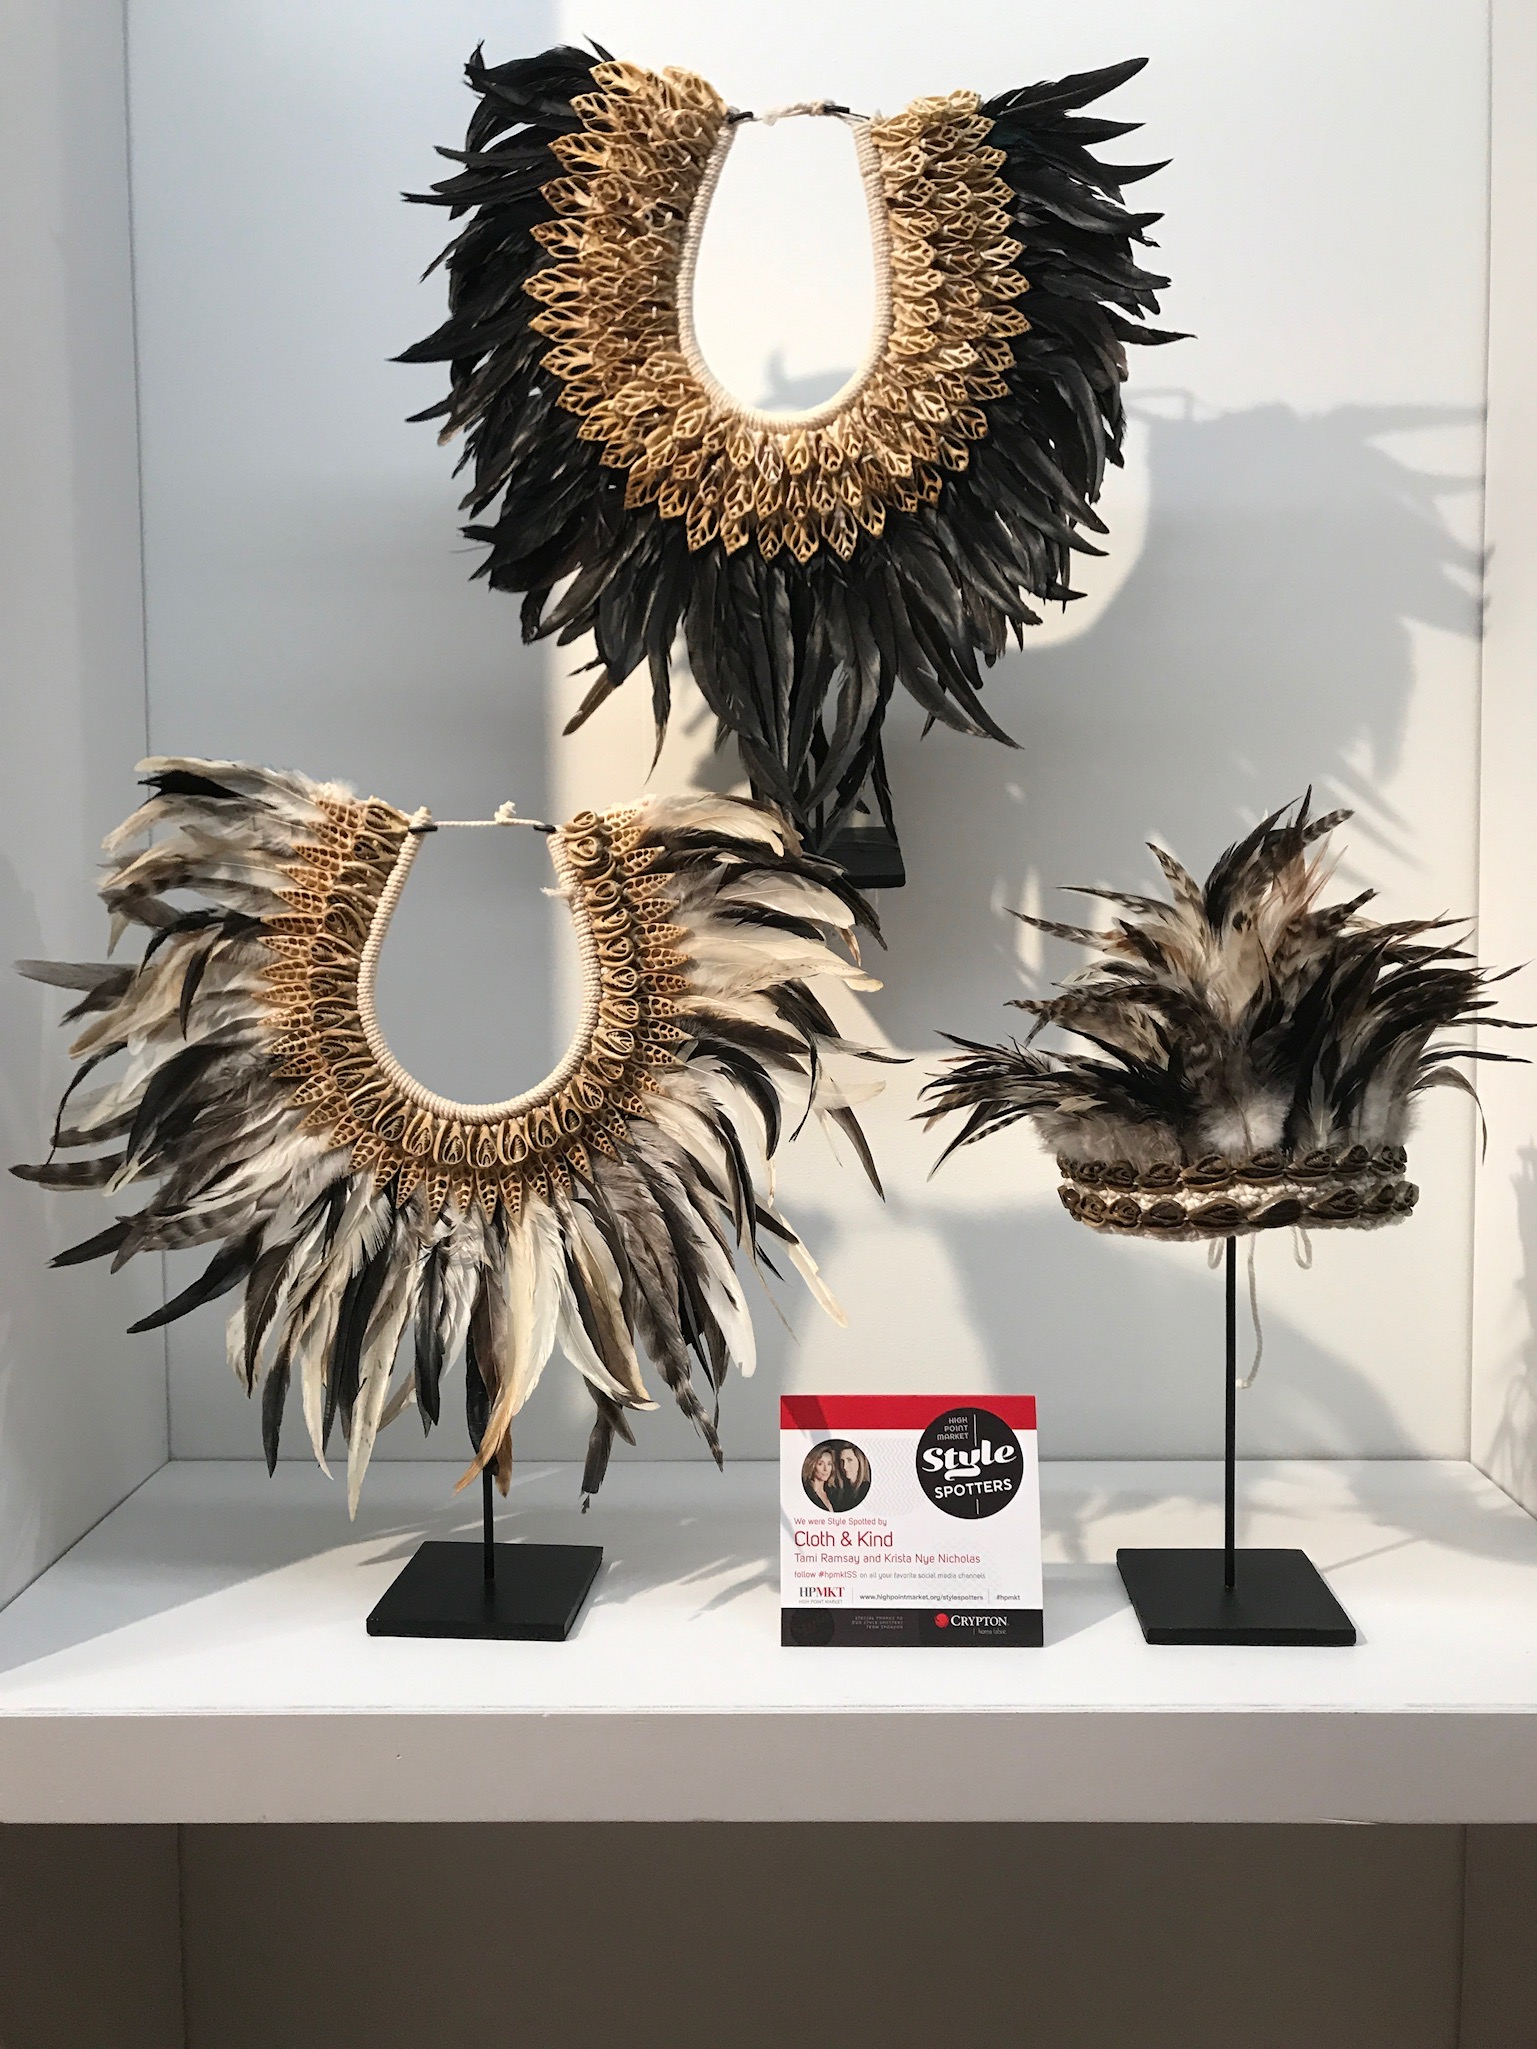 Primary Necklaces & Headdress by Atelier CSD Davoy from Schwung Home USA Inc. - Fall 2017 High Point Market Style Spotters CLOTH & KIND Interiors saved to CLOTH & KIND, Krista Nye Nicholas and Tami Ramsay - Feather trend 2018 - feathers in fashion